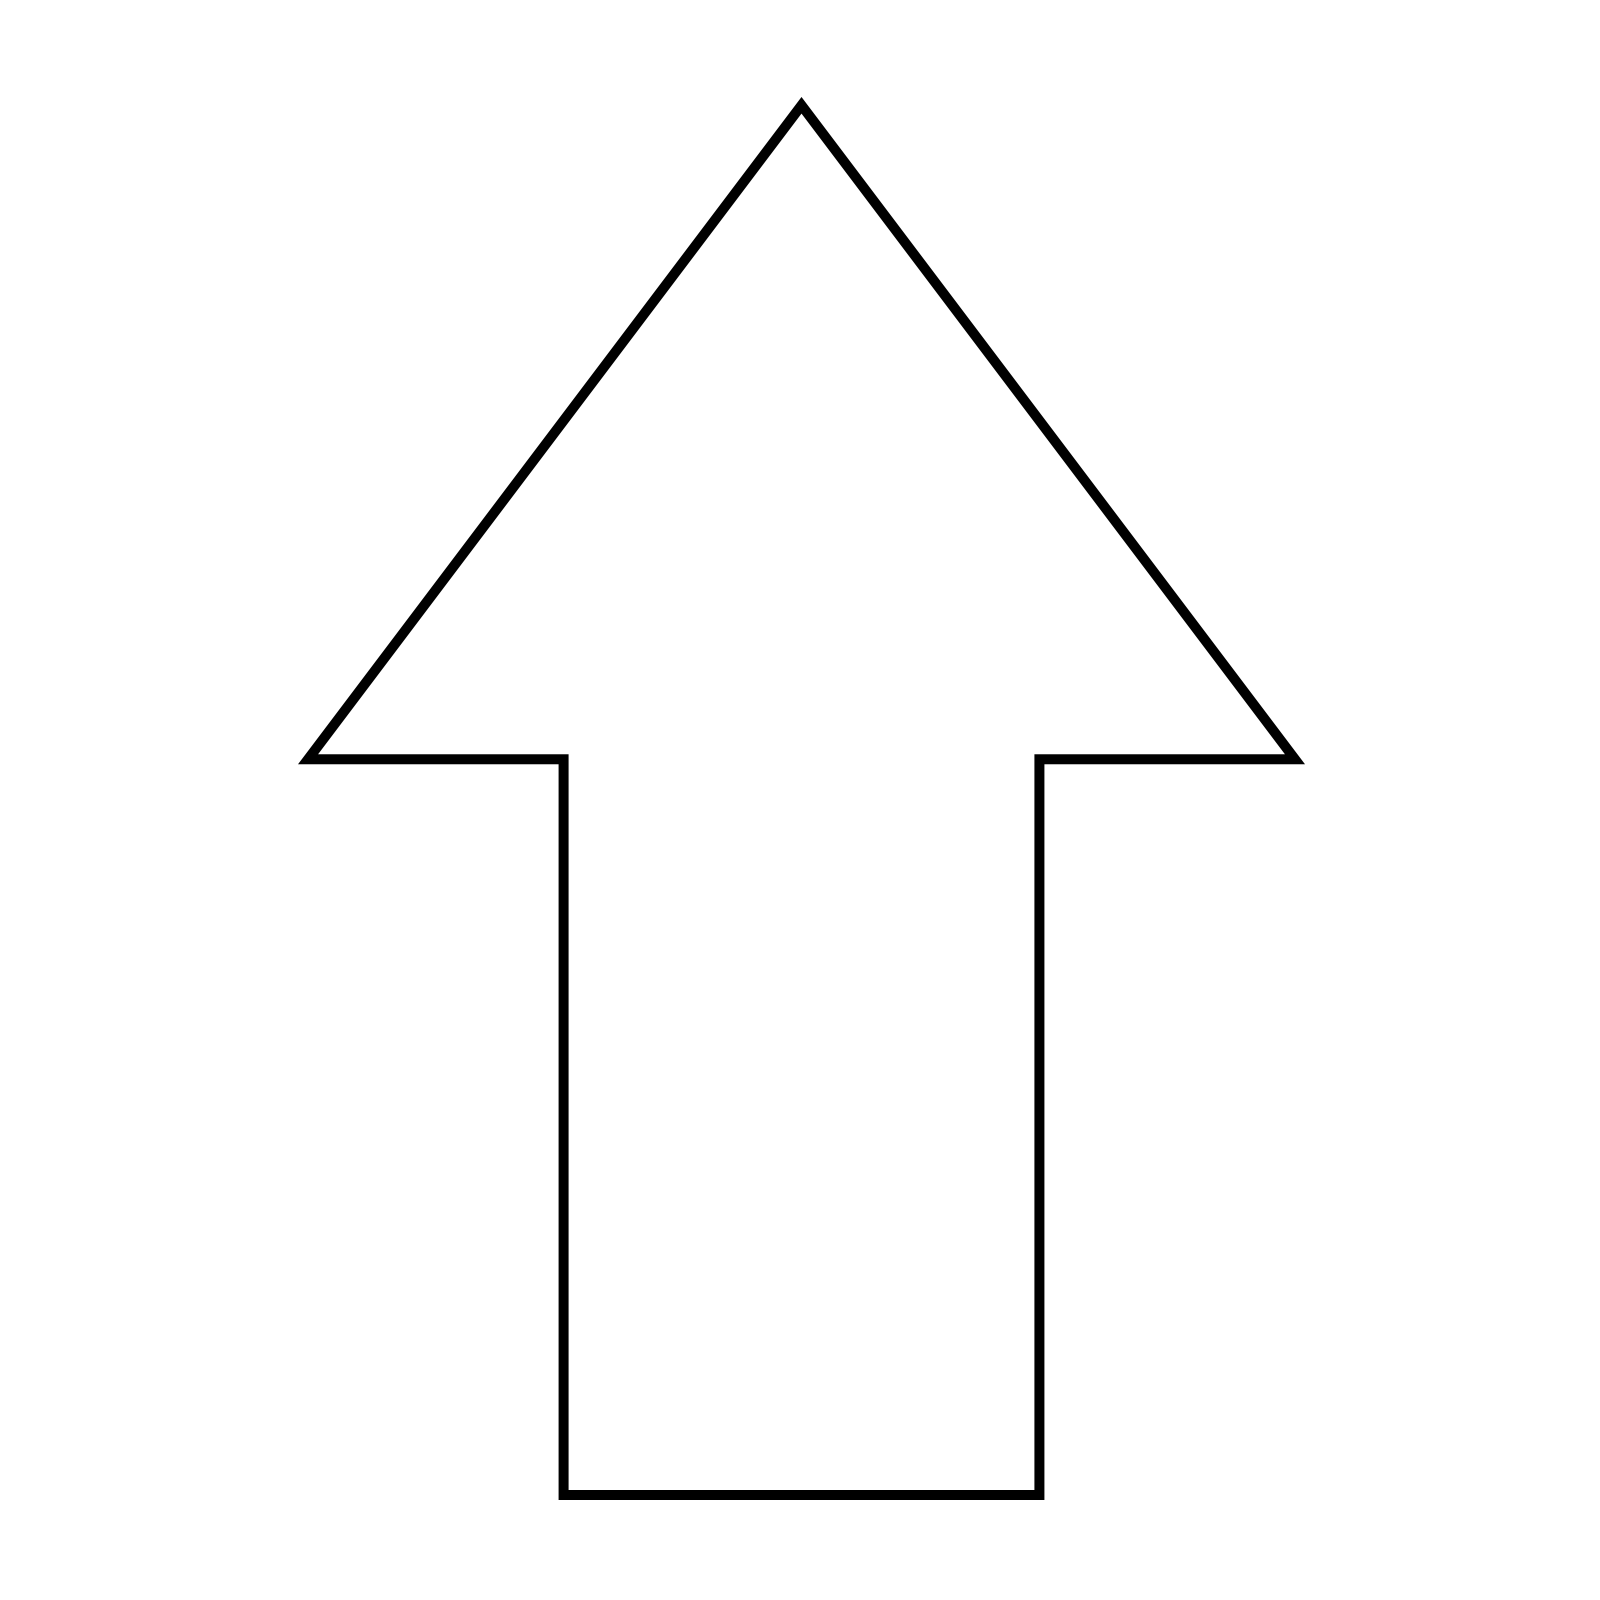 Curved White Arrow Png